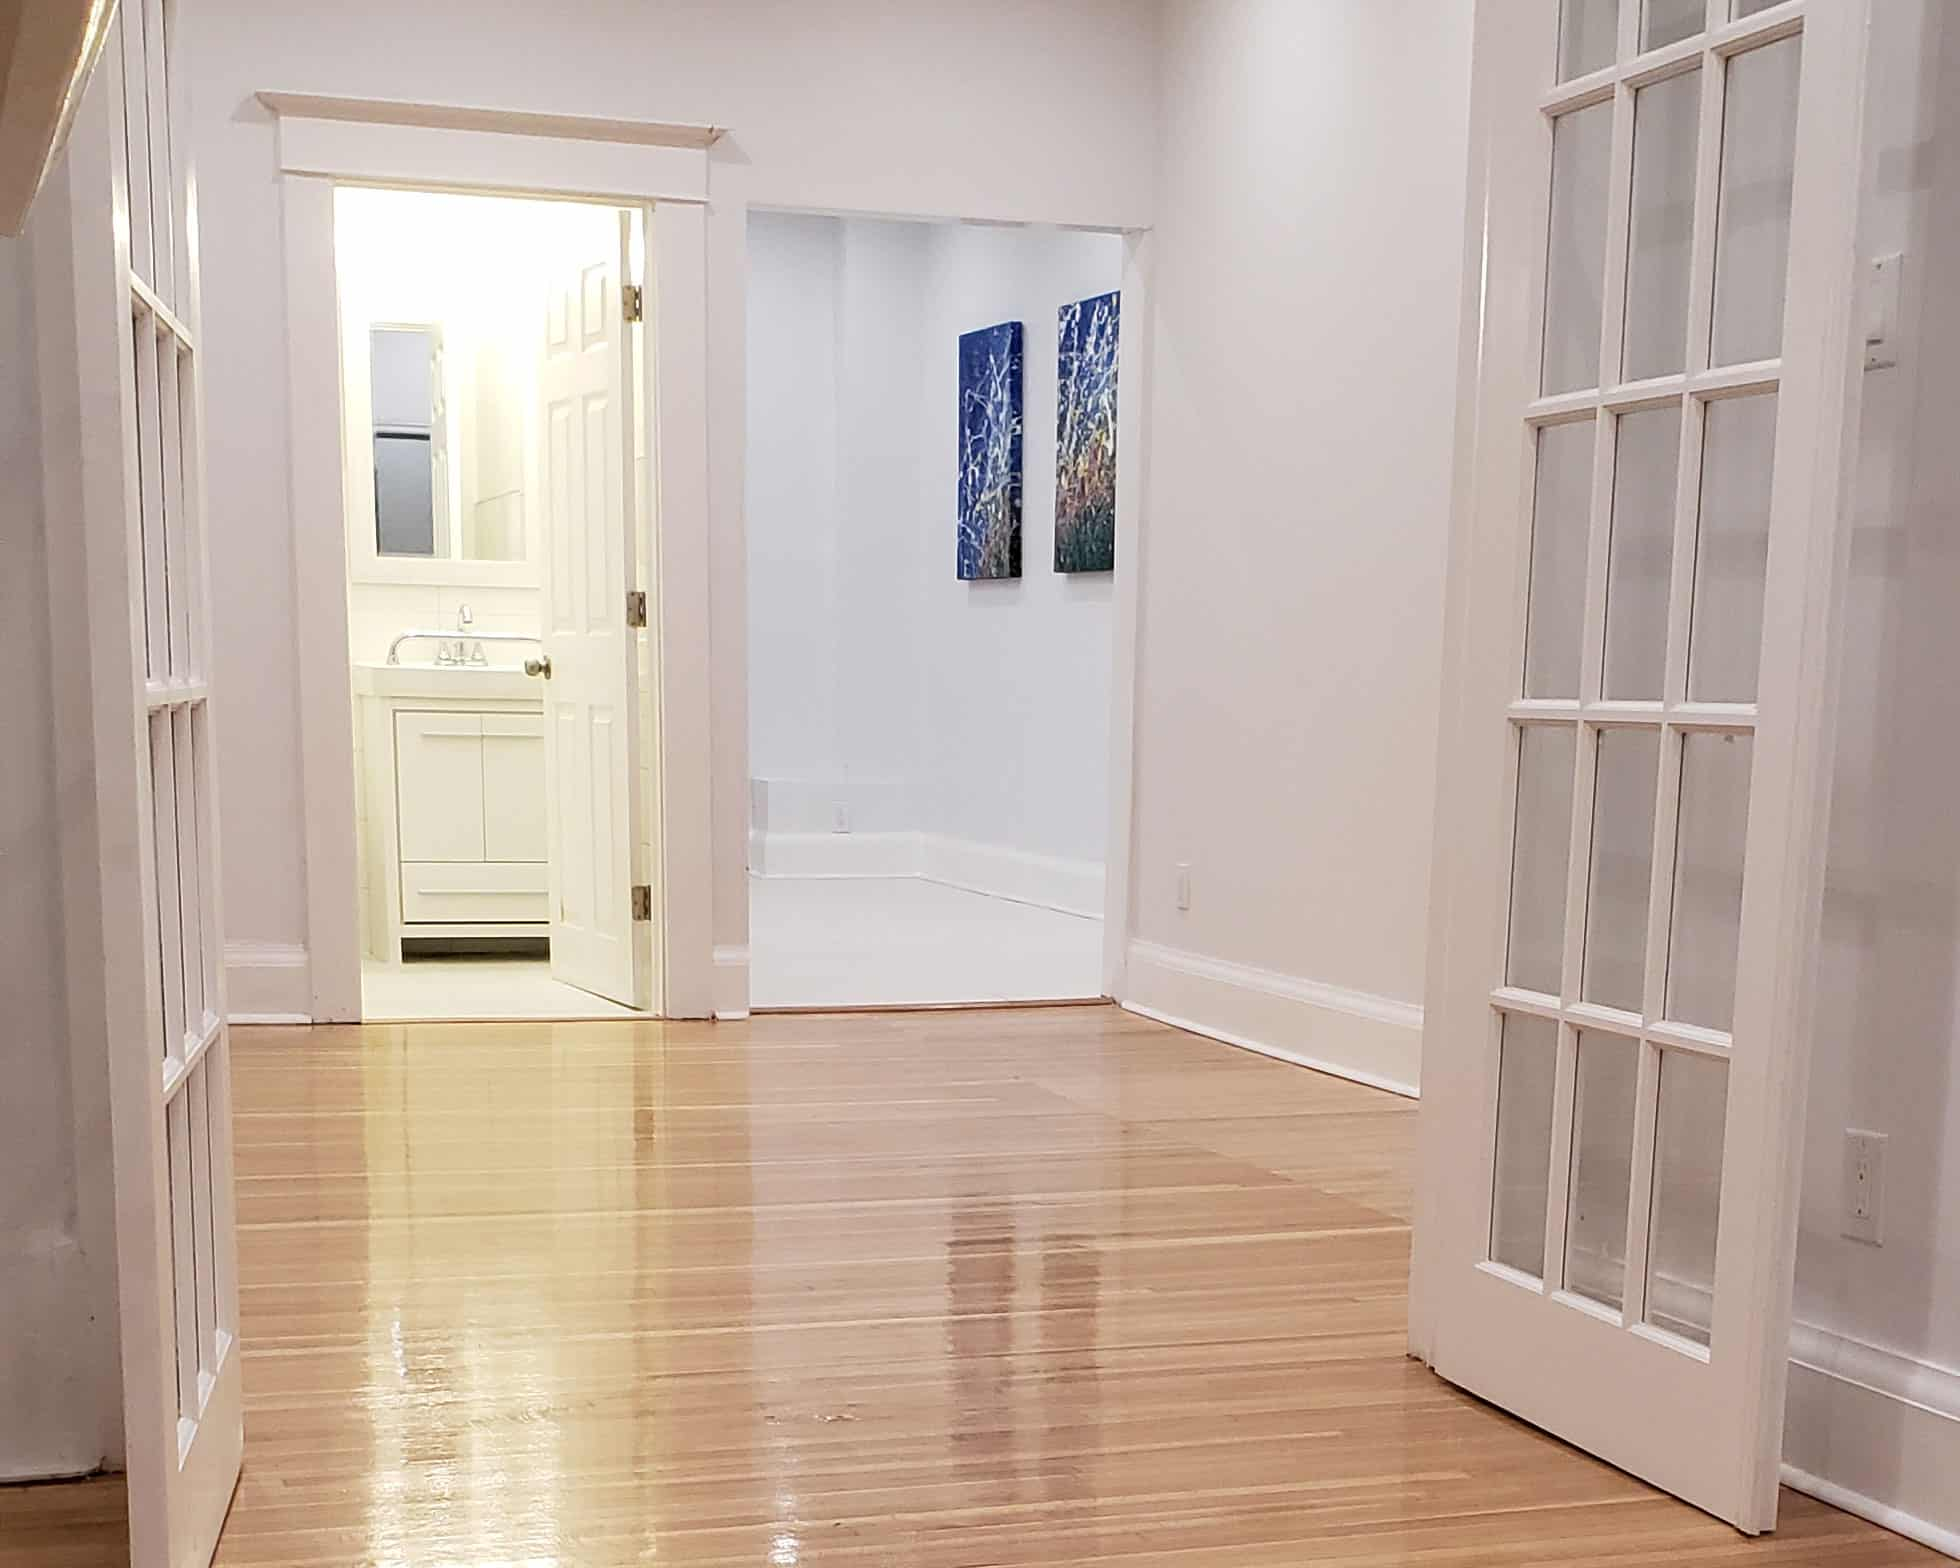 Gallery_Home2